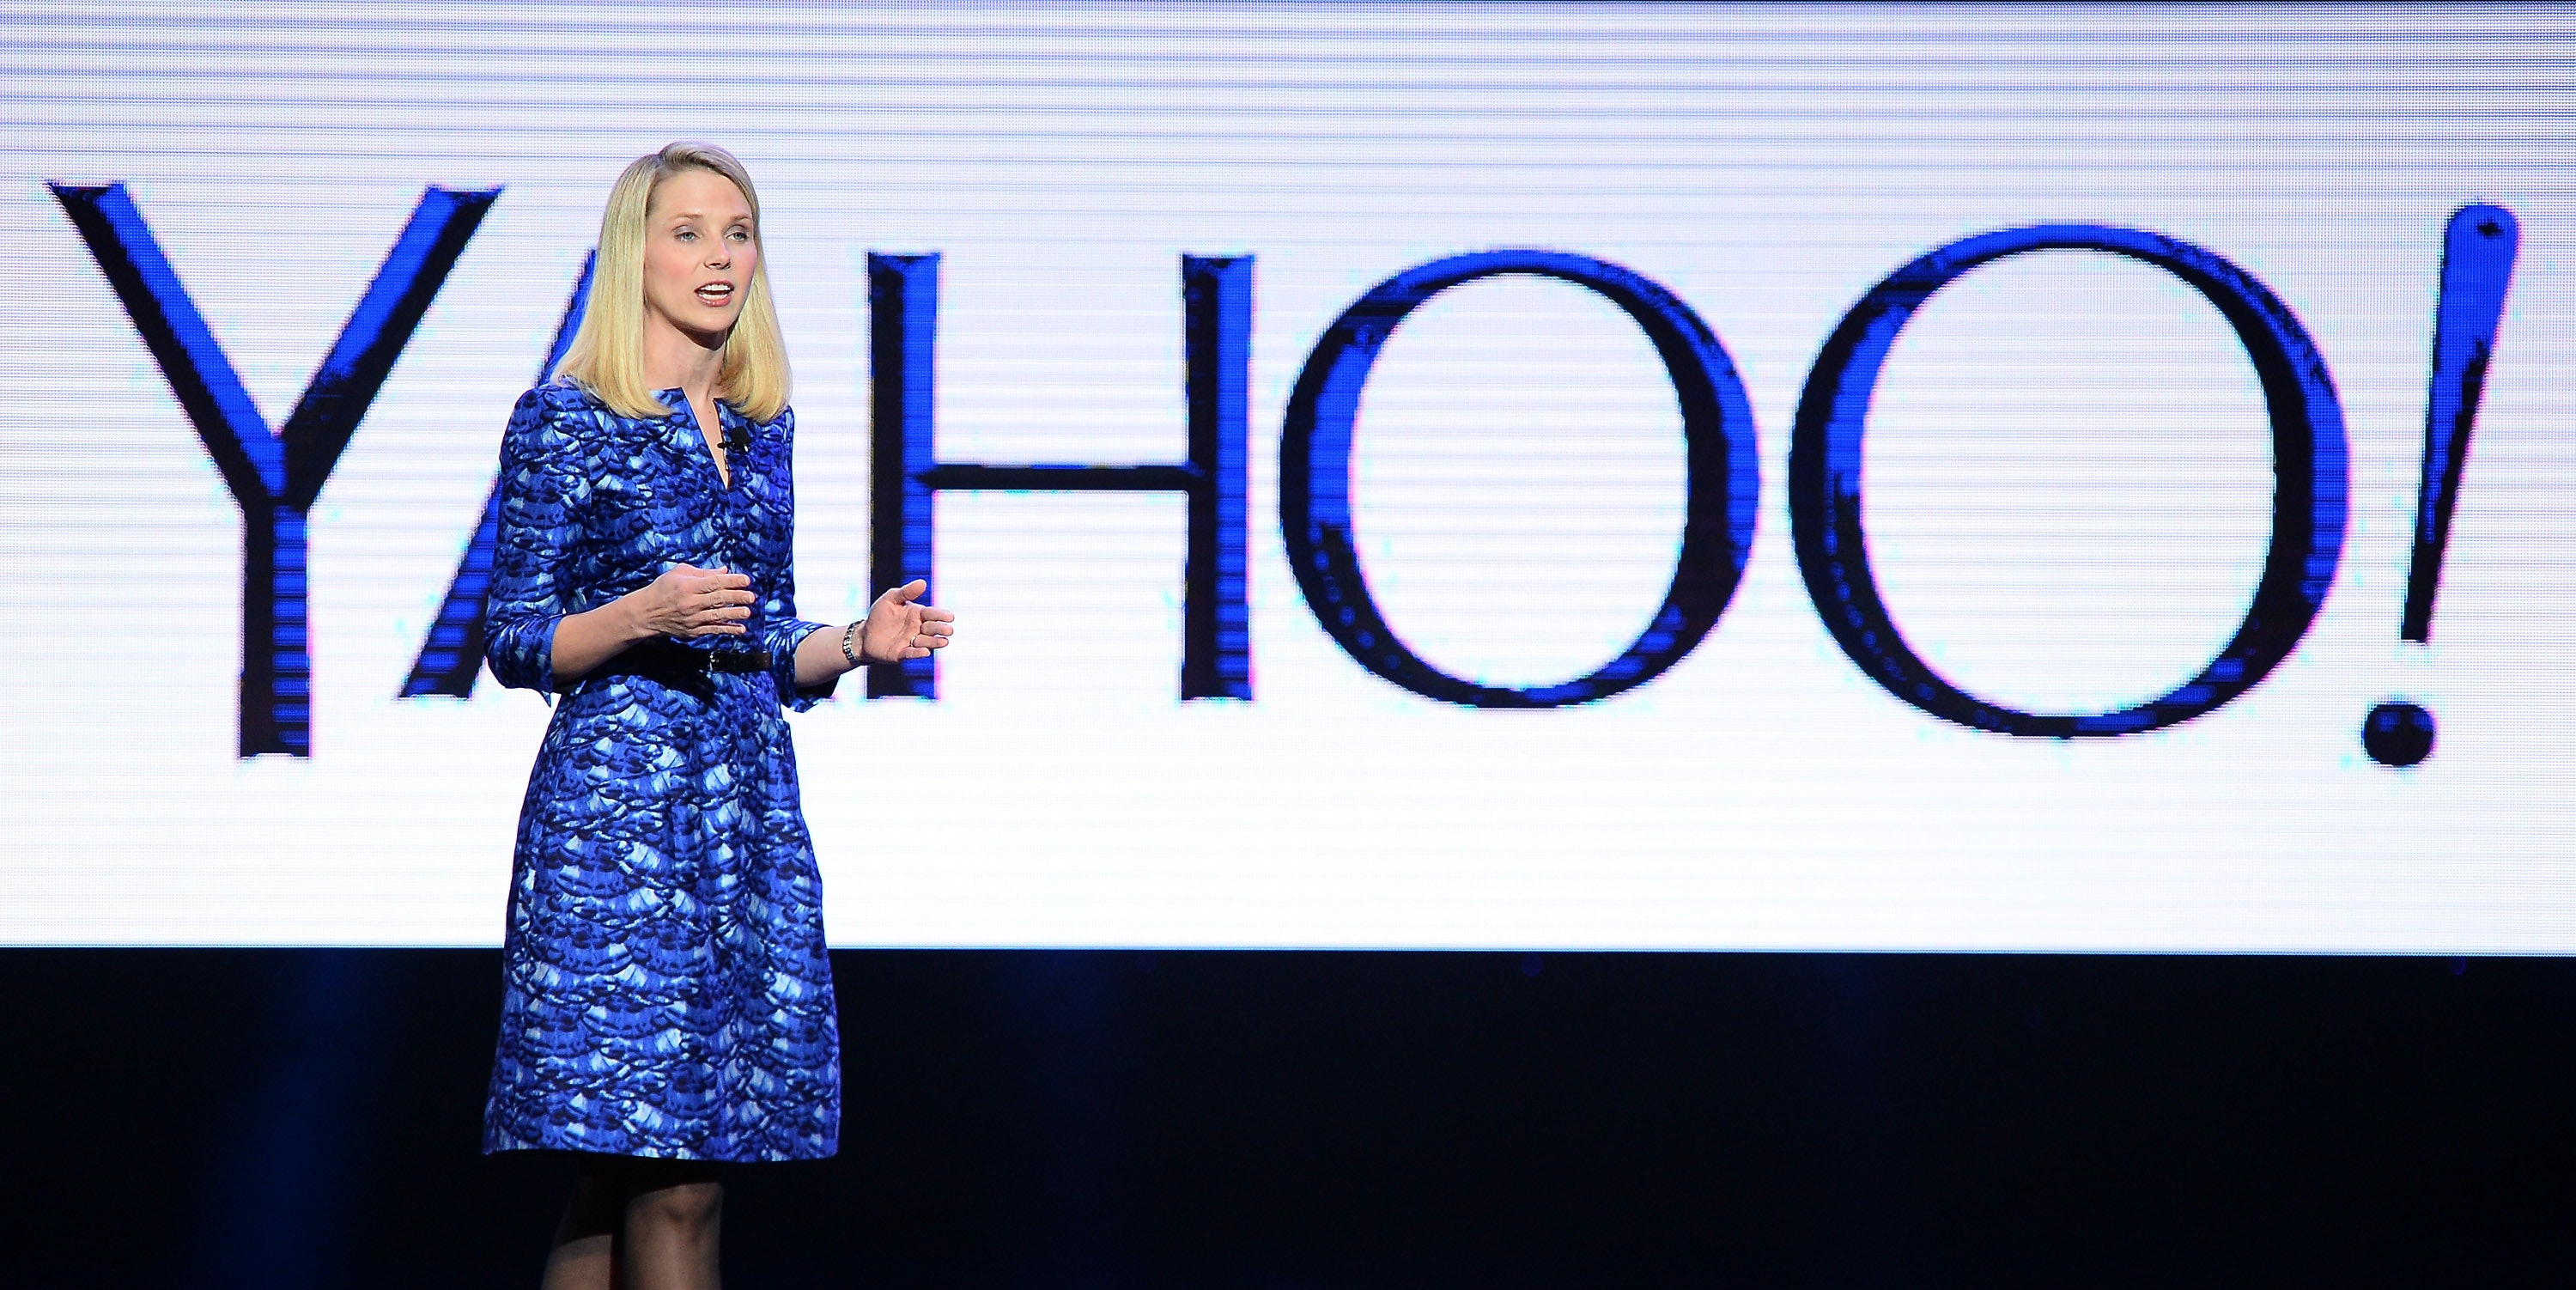 The hack was revealed right as Yahoo closes on a $4.8 billion acquisition from Verizon.